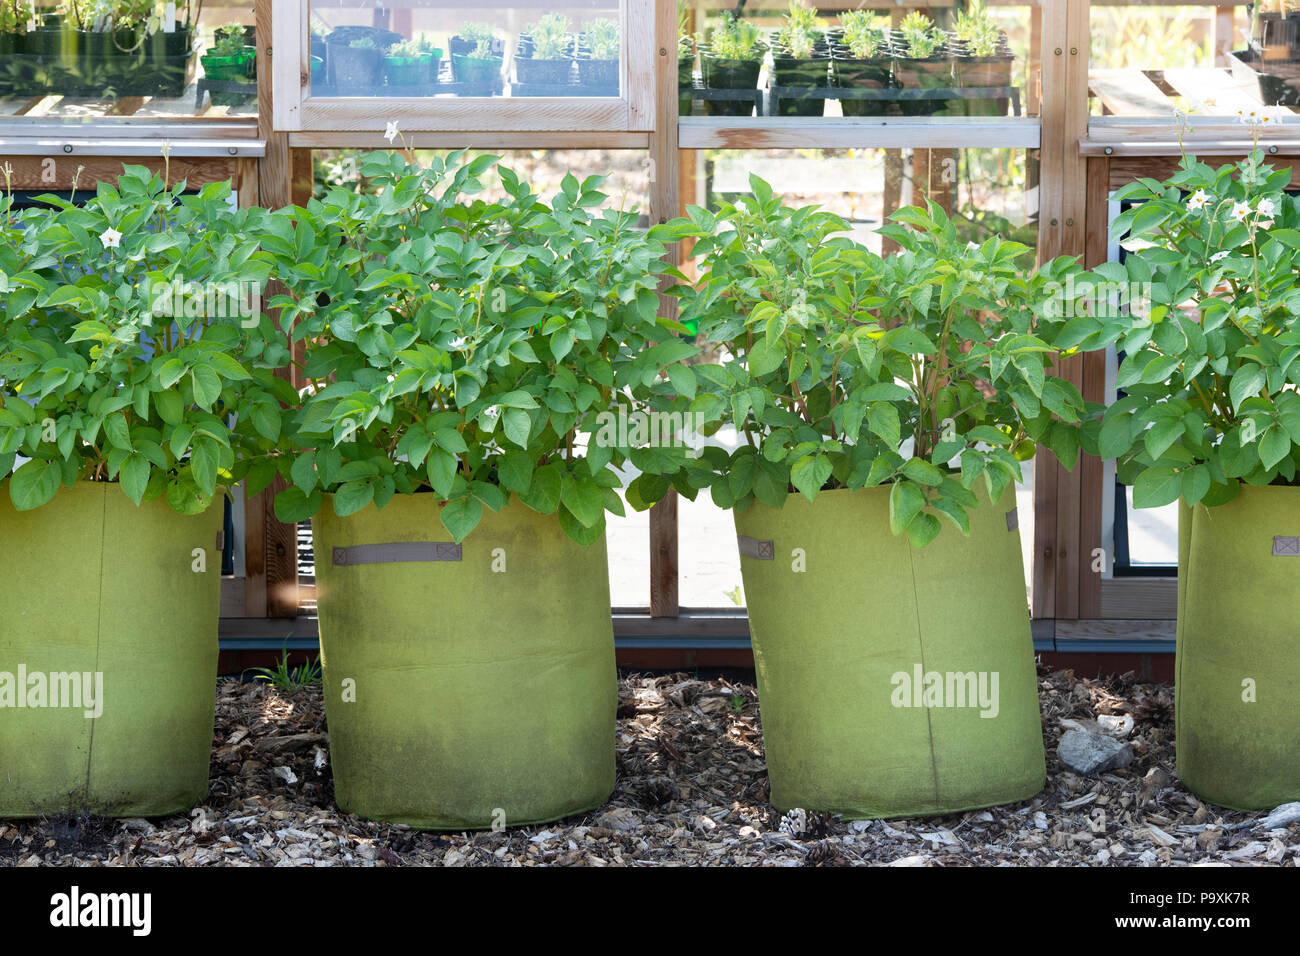 how to plant potatoes in a grow bag